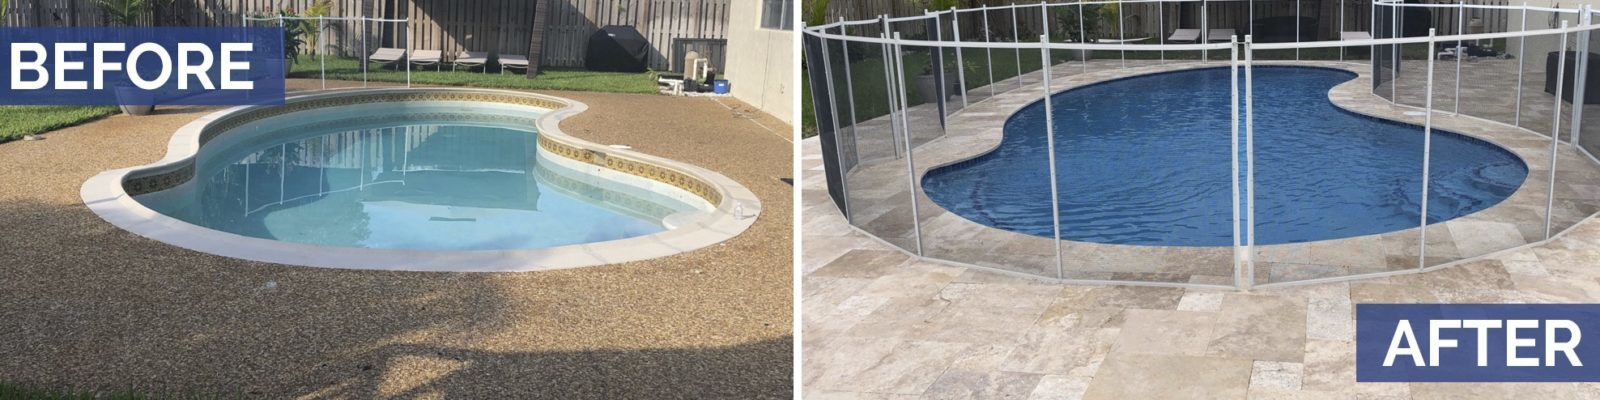 Fort-Lauderdale-Pool-Remodel